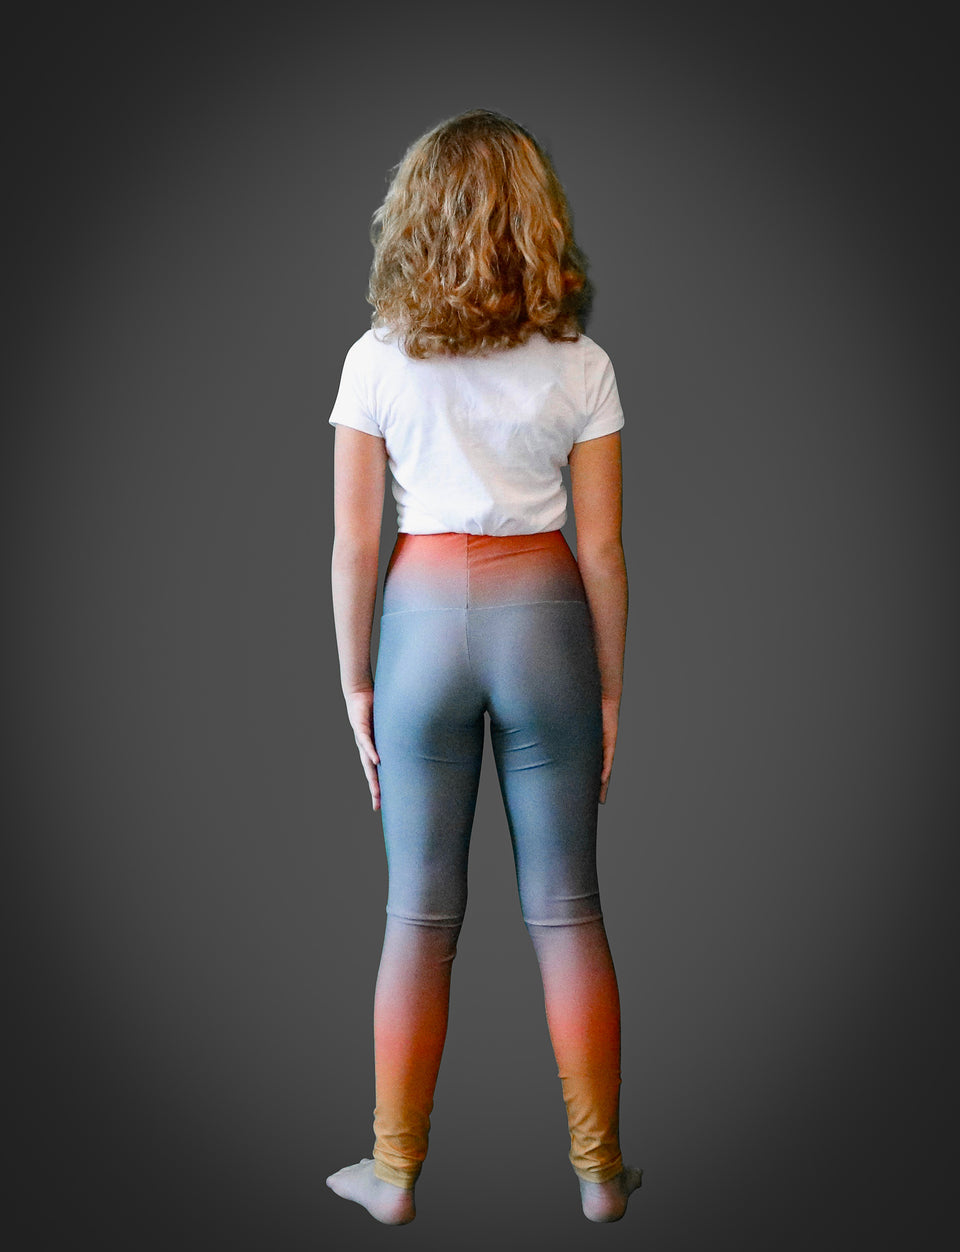 SUNRISE-Yoga Legging TEEN - ADULT